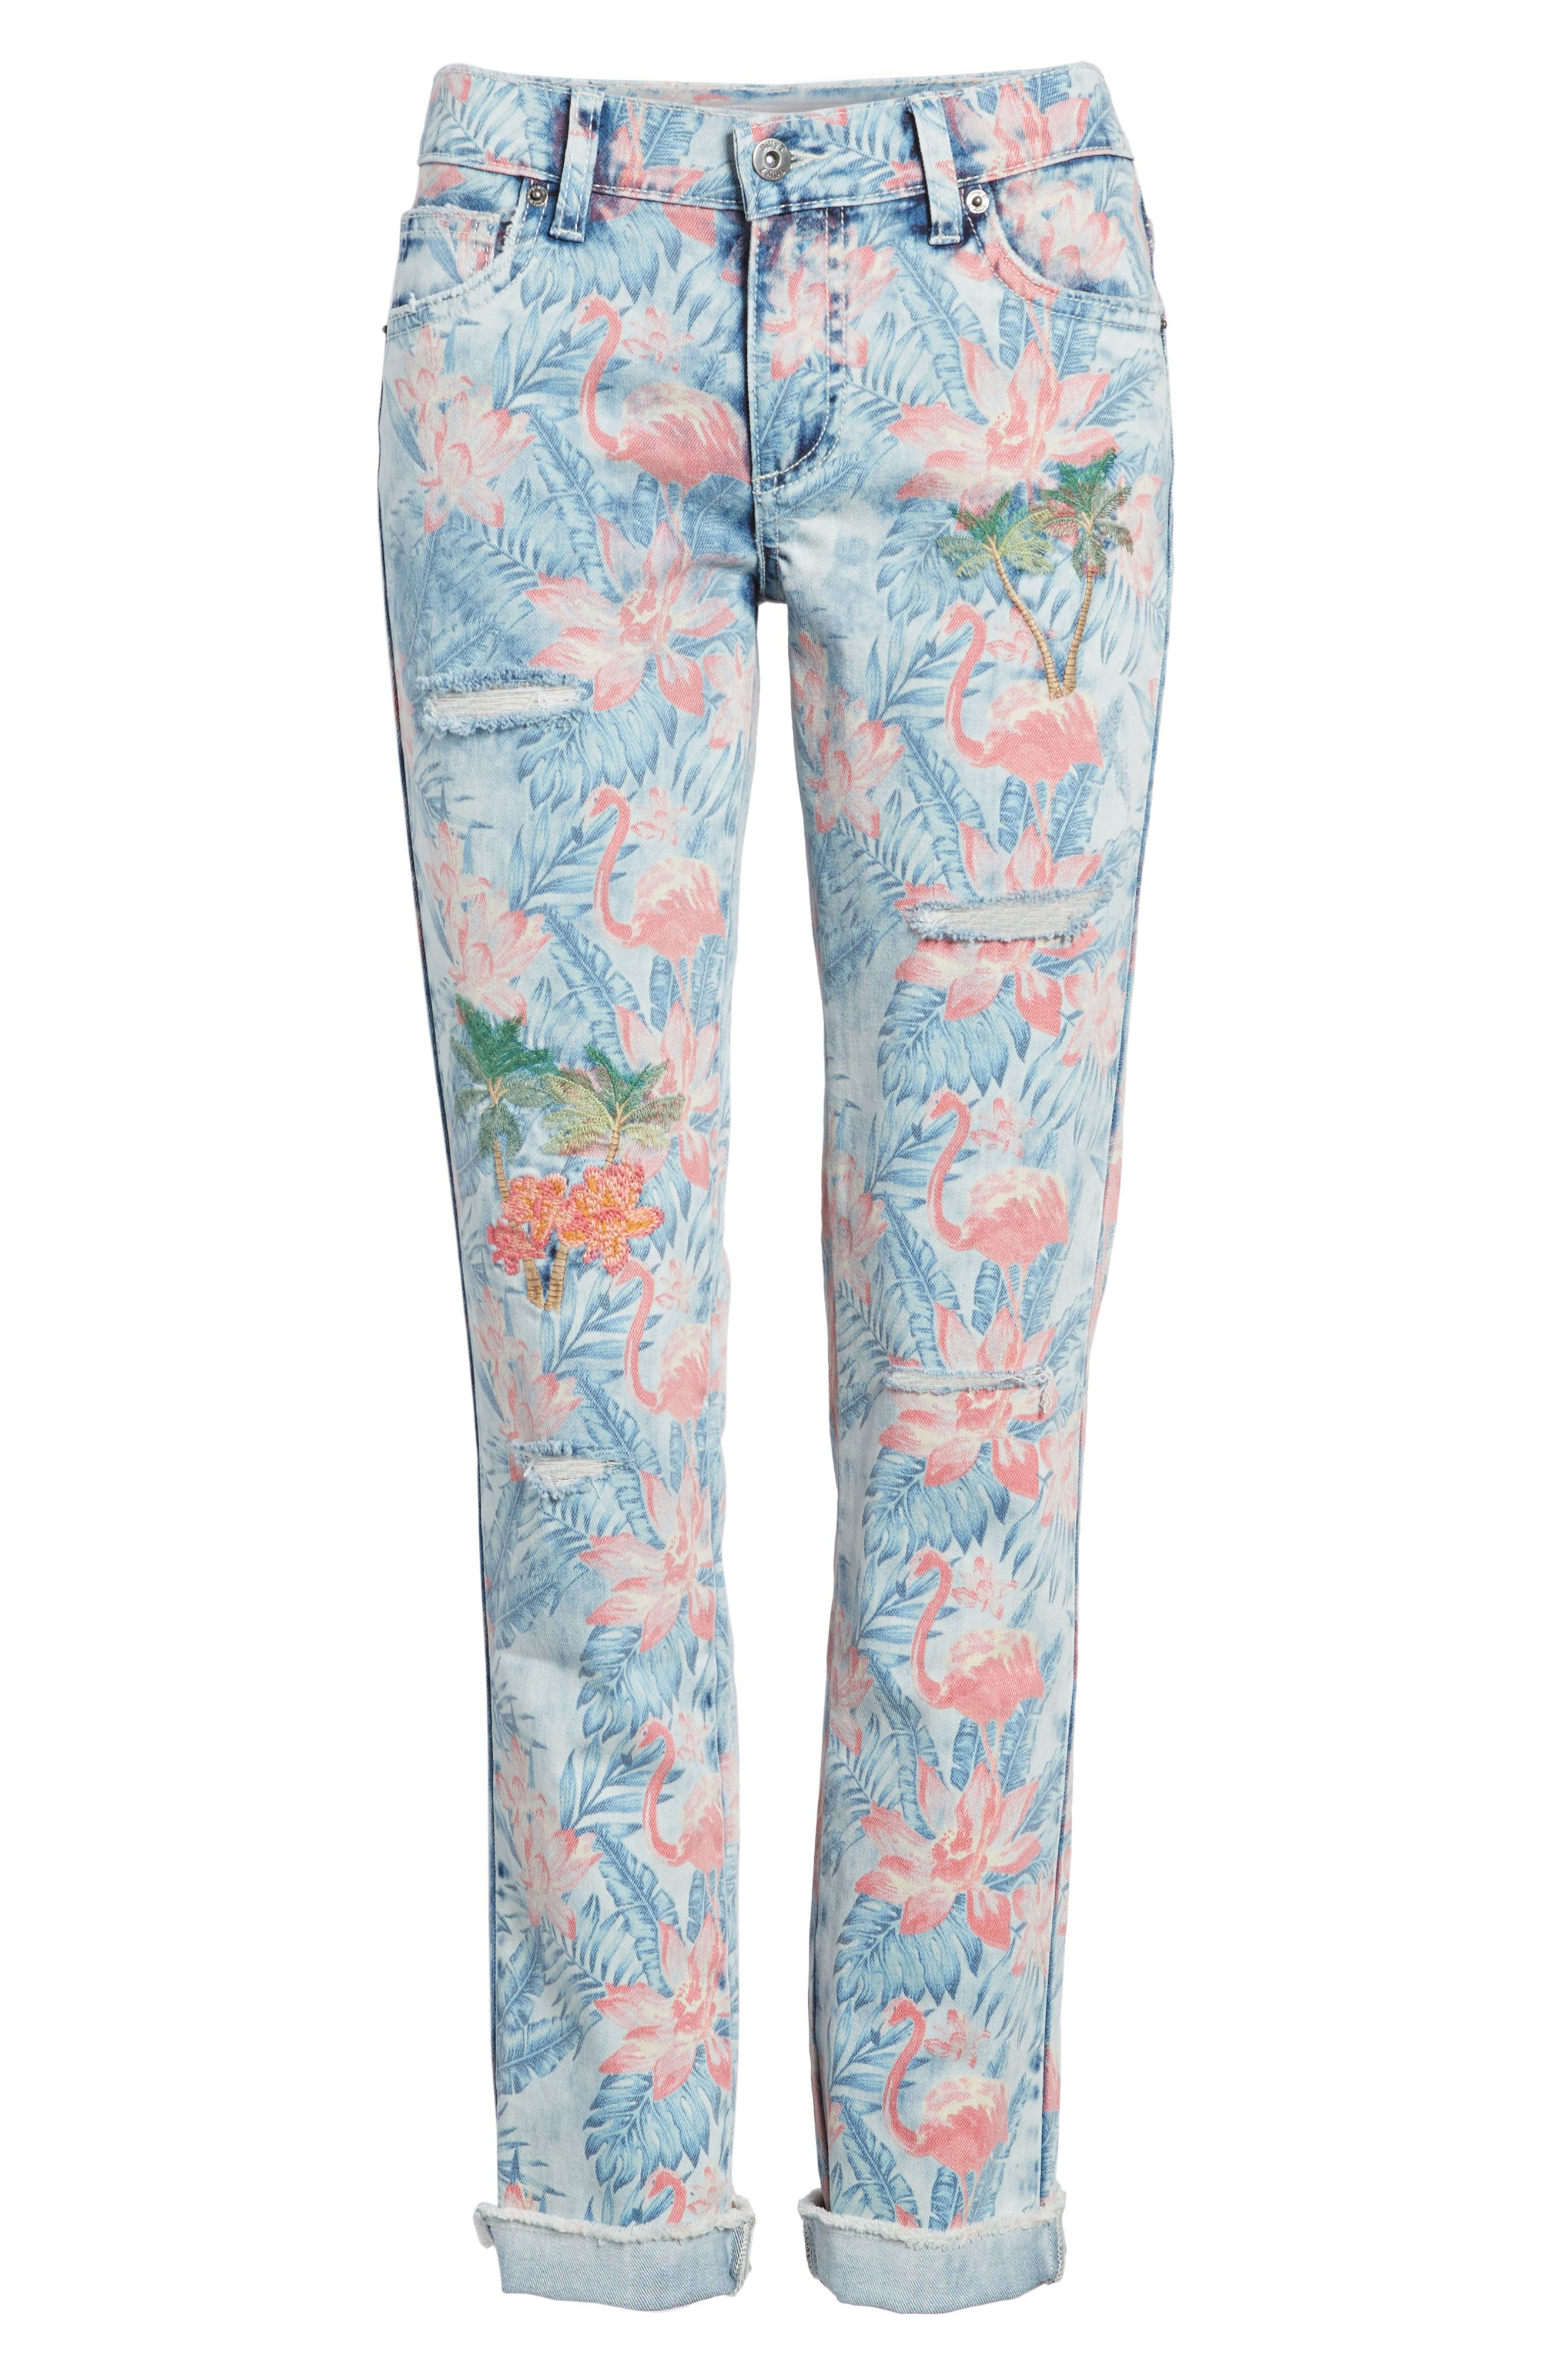 Embroidered Distressed Flamingo Jeans,                             Alternate thumbnail 7, color,                             450